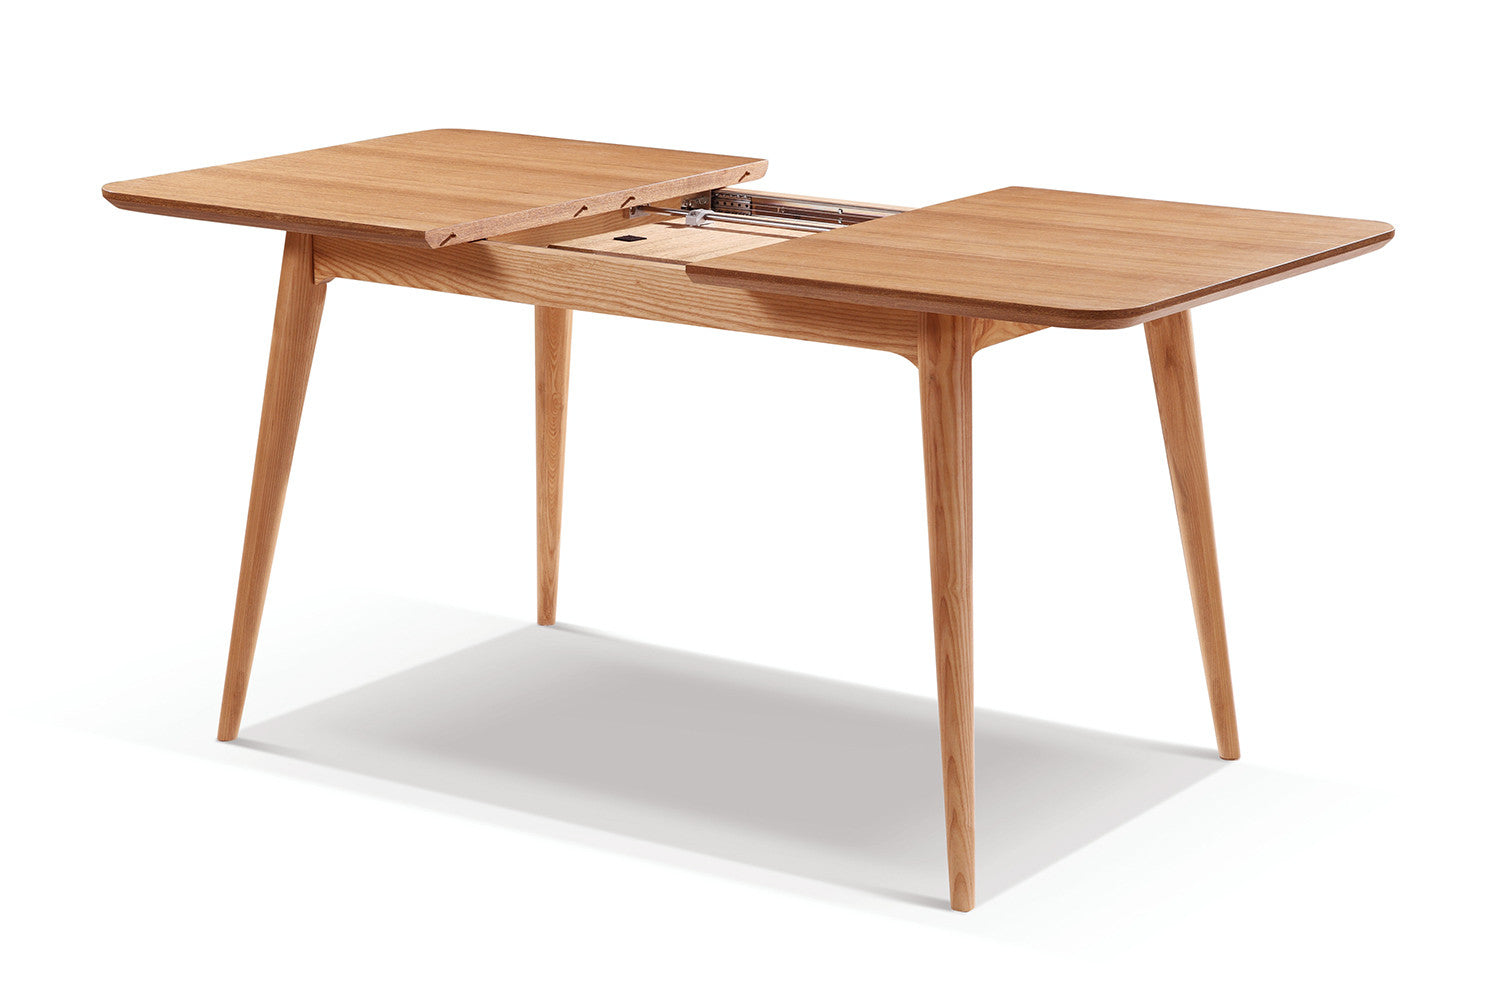 Table de salle manger extensible en bois adda dewarens - Dimensions table a manger ...